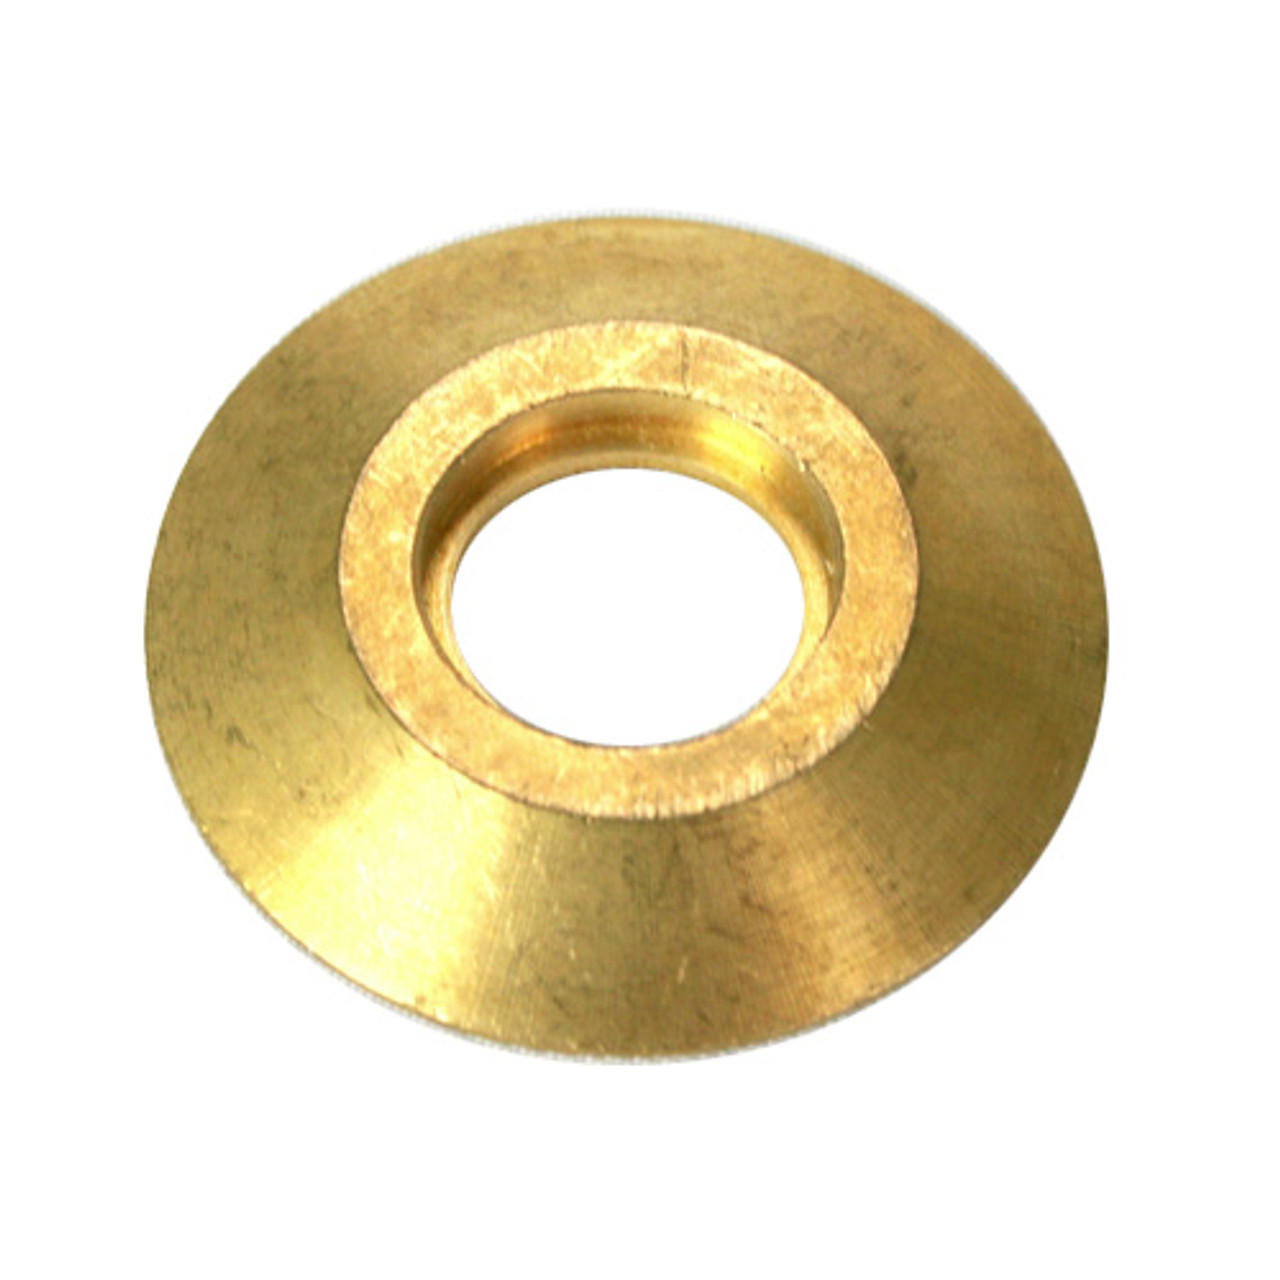 Loop-Loc Parts Masonry Anchor Collar to finish and decorate anchor insert